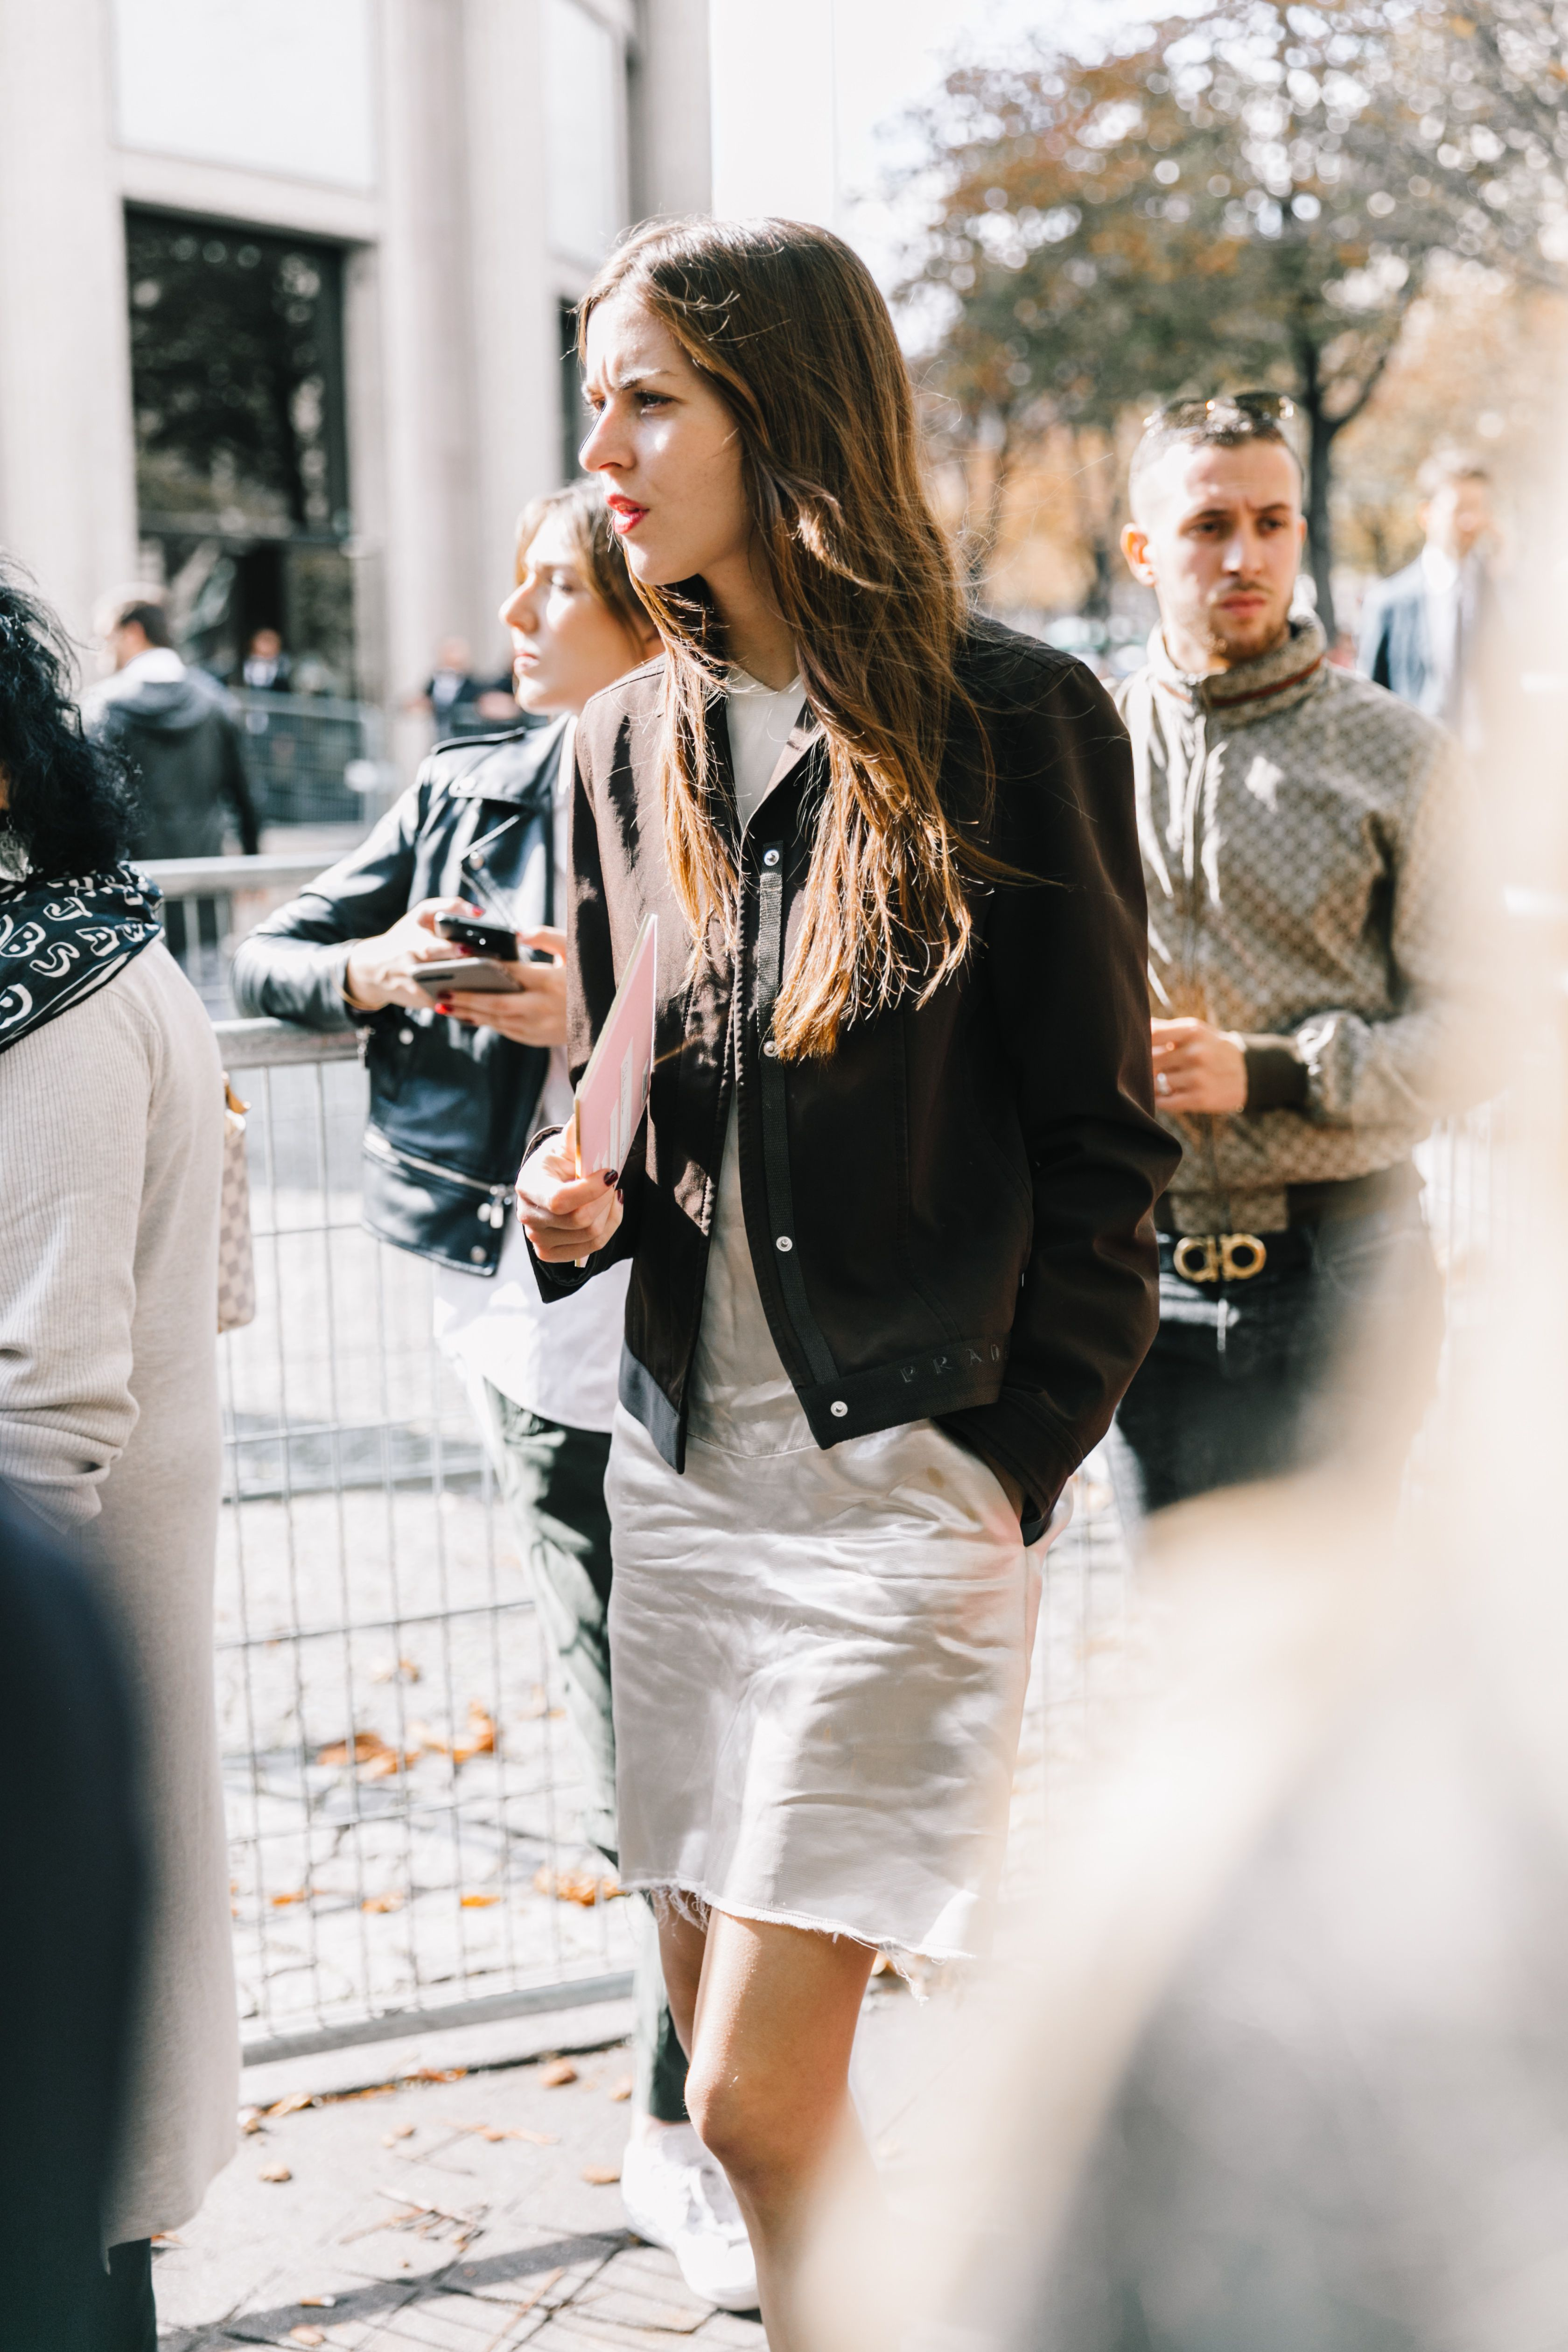 143765c0111c The first step towards uncovering personal style is to identify what looks  appeal to you. Classically chic with a hint of Parisian style